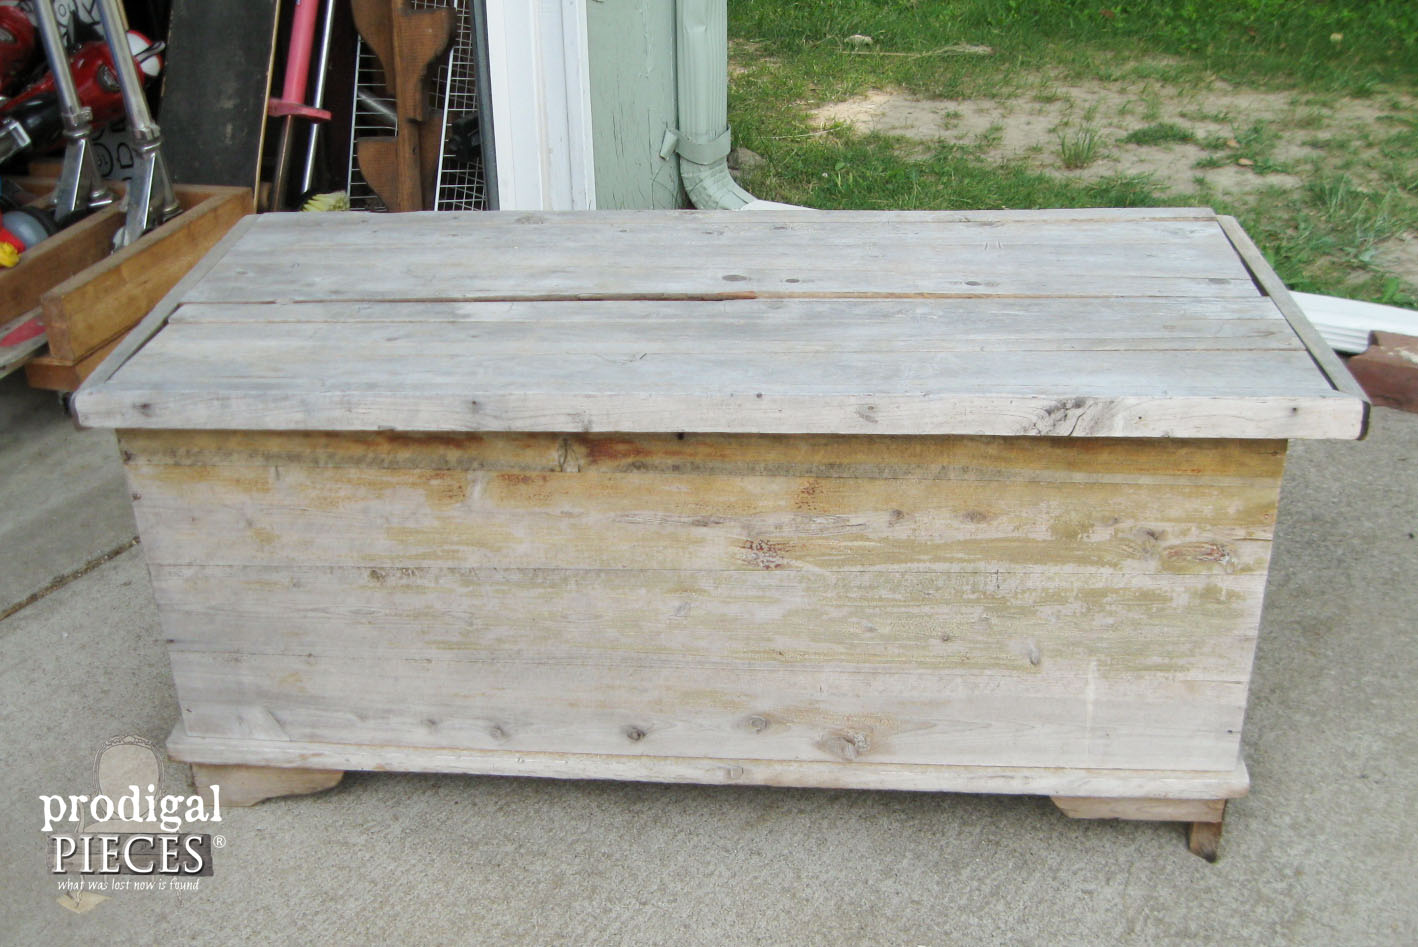 Curbside Cedar Chest Before Makeover by Prodigal Pieces | www.prodigalpieces.com